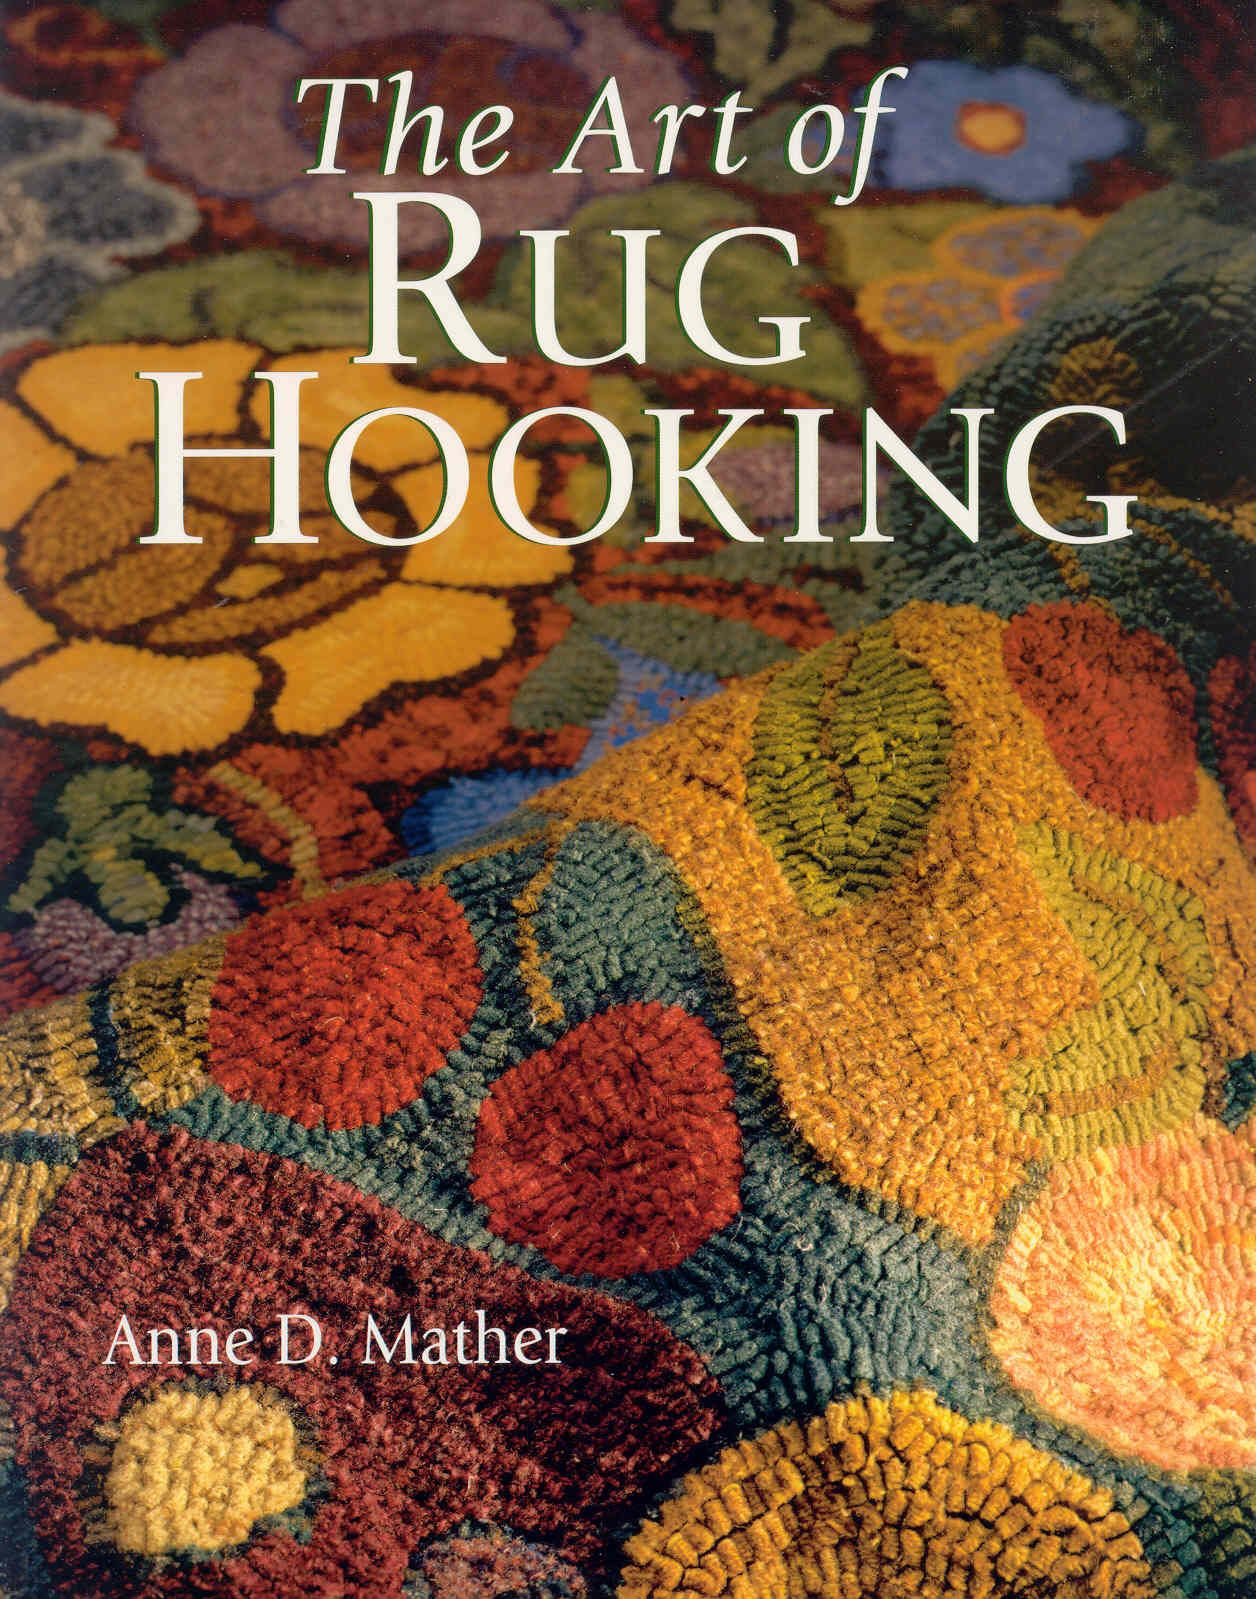 Free Locker Hook Rug Patterns | Rug Hooking | Diy Rugs | Rug Hooking - Free Printable Latch Hook Patterns